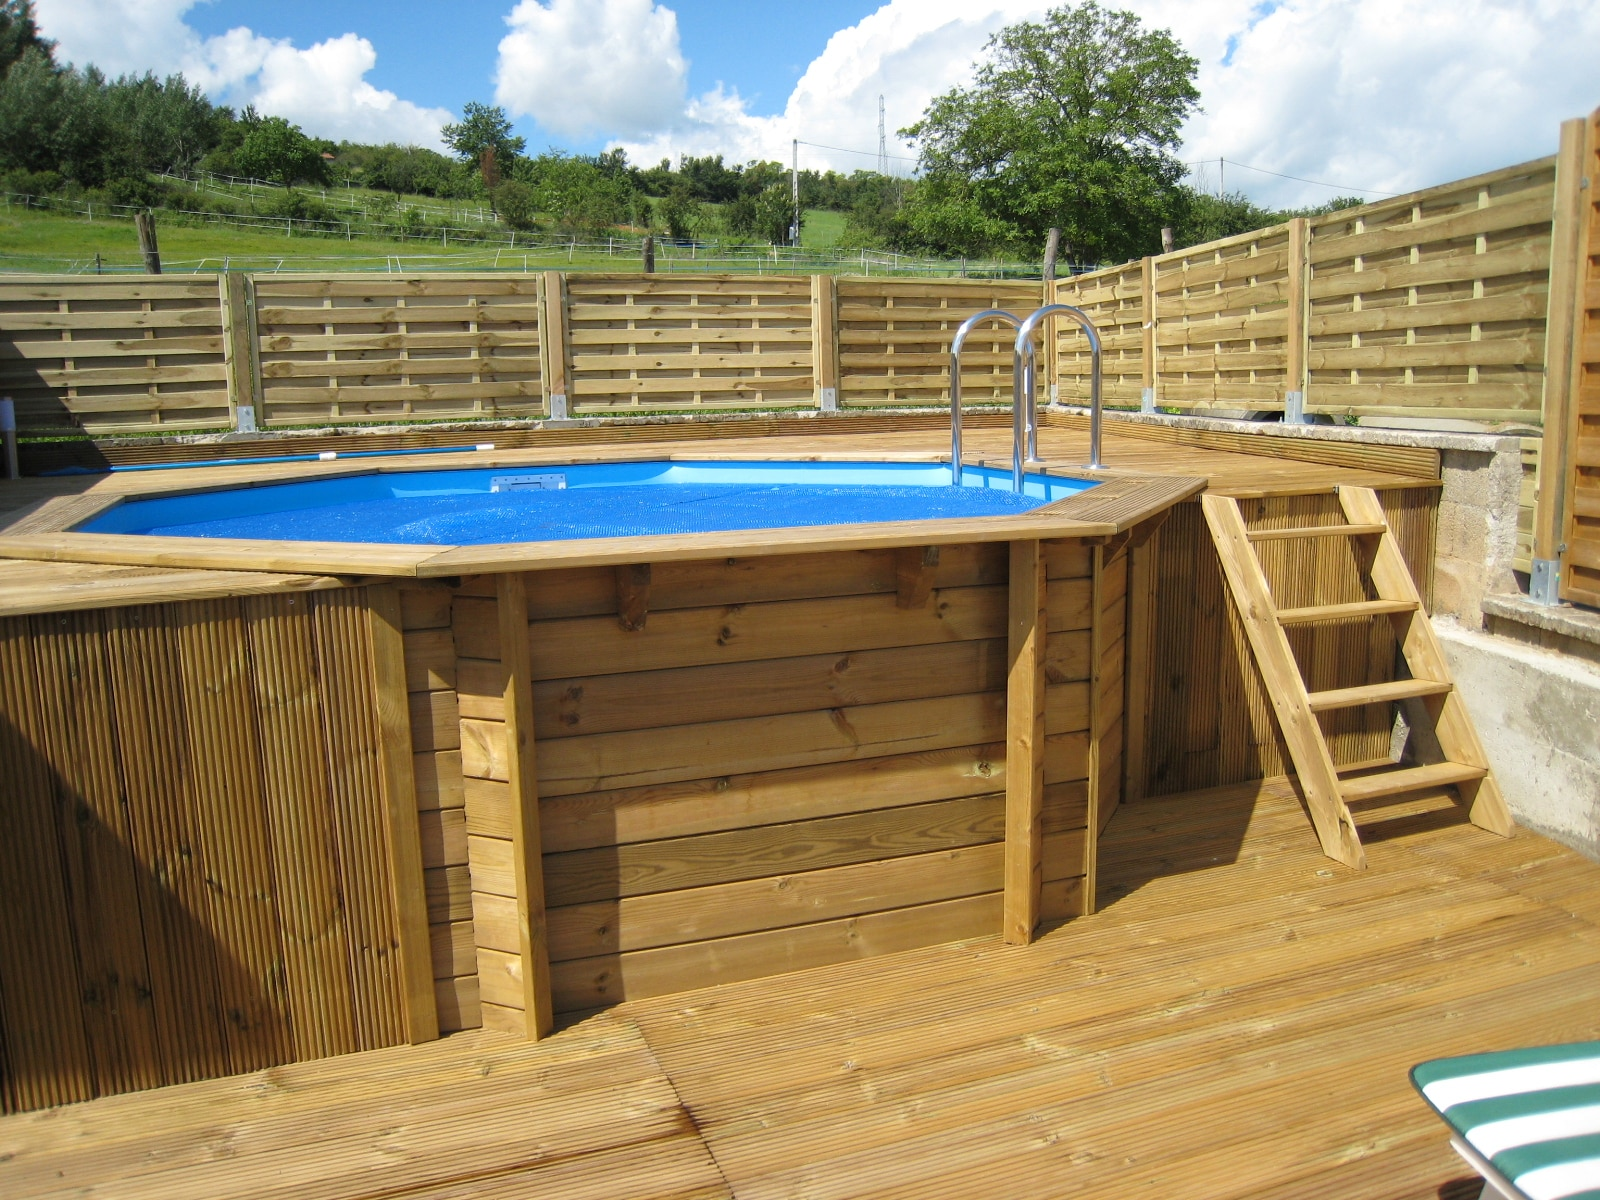 Comment monter une piscine en bois for Piscine hors sol legislation